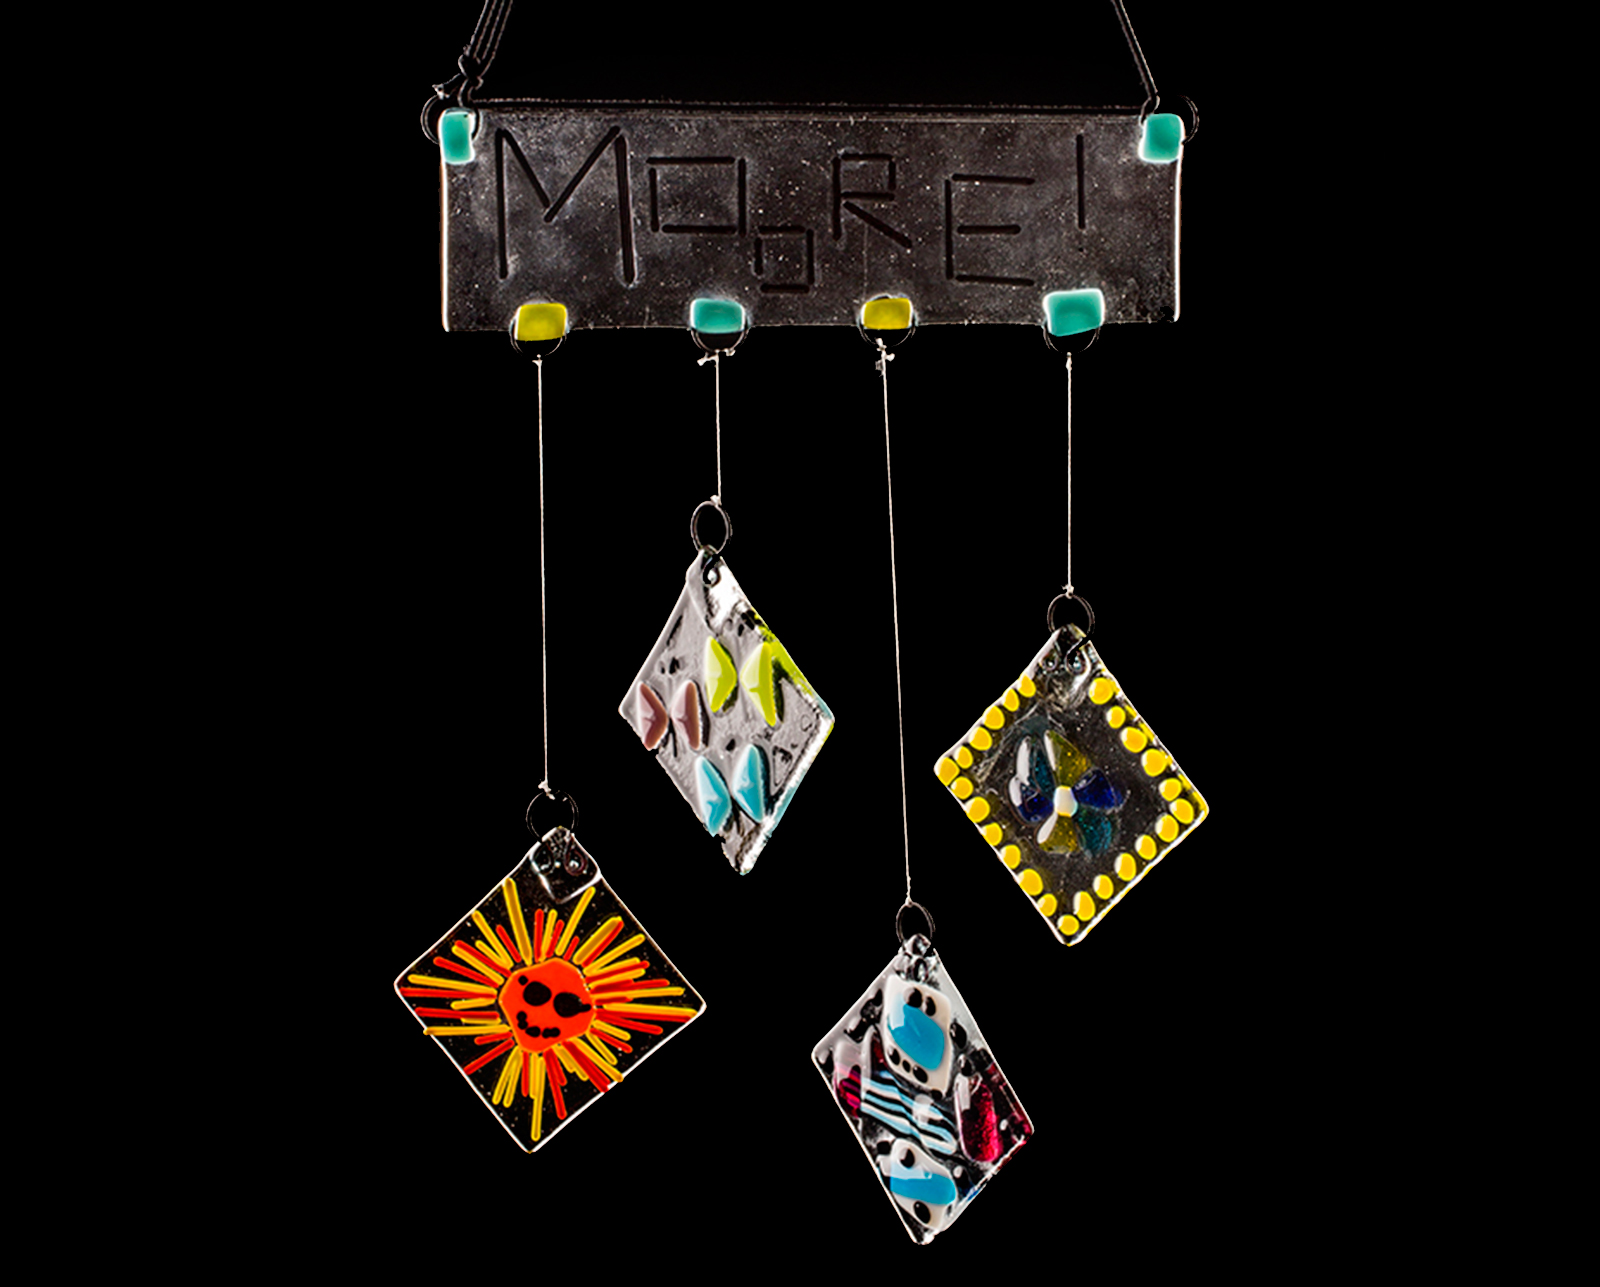 Make your own glass corning museum of glass for Wind mobile family plan